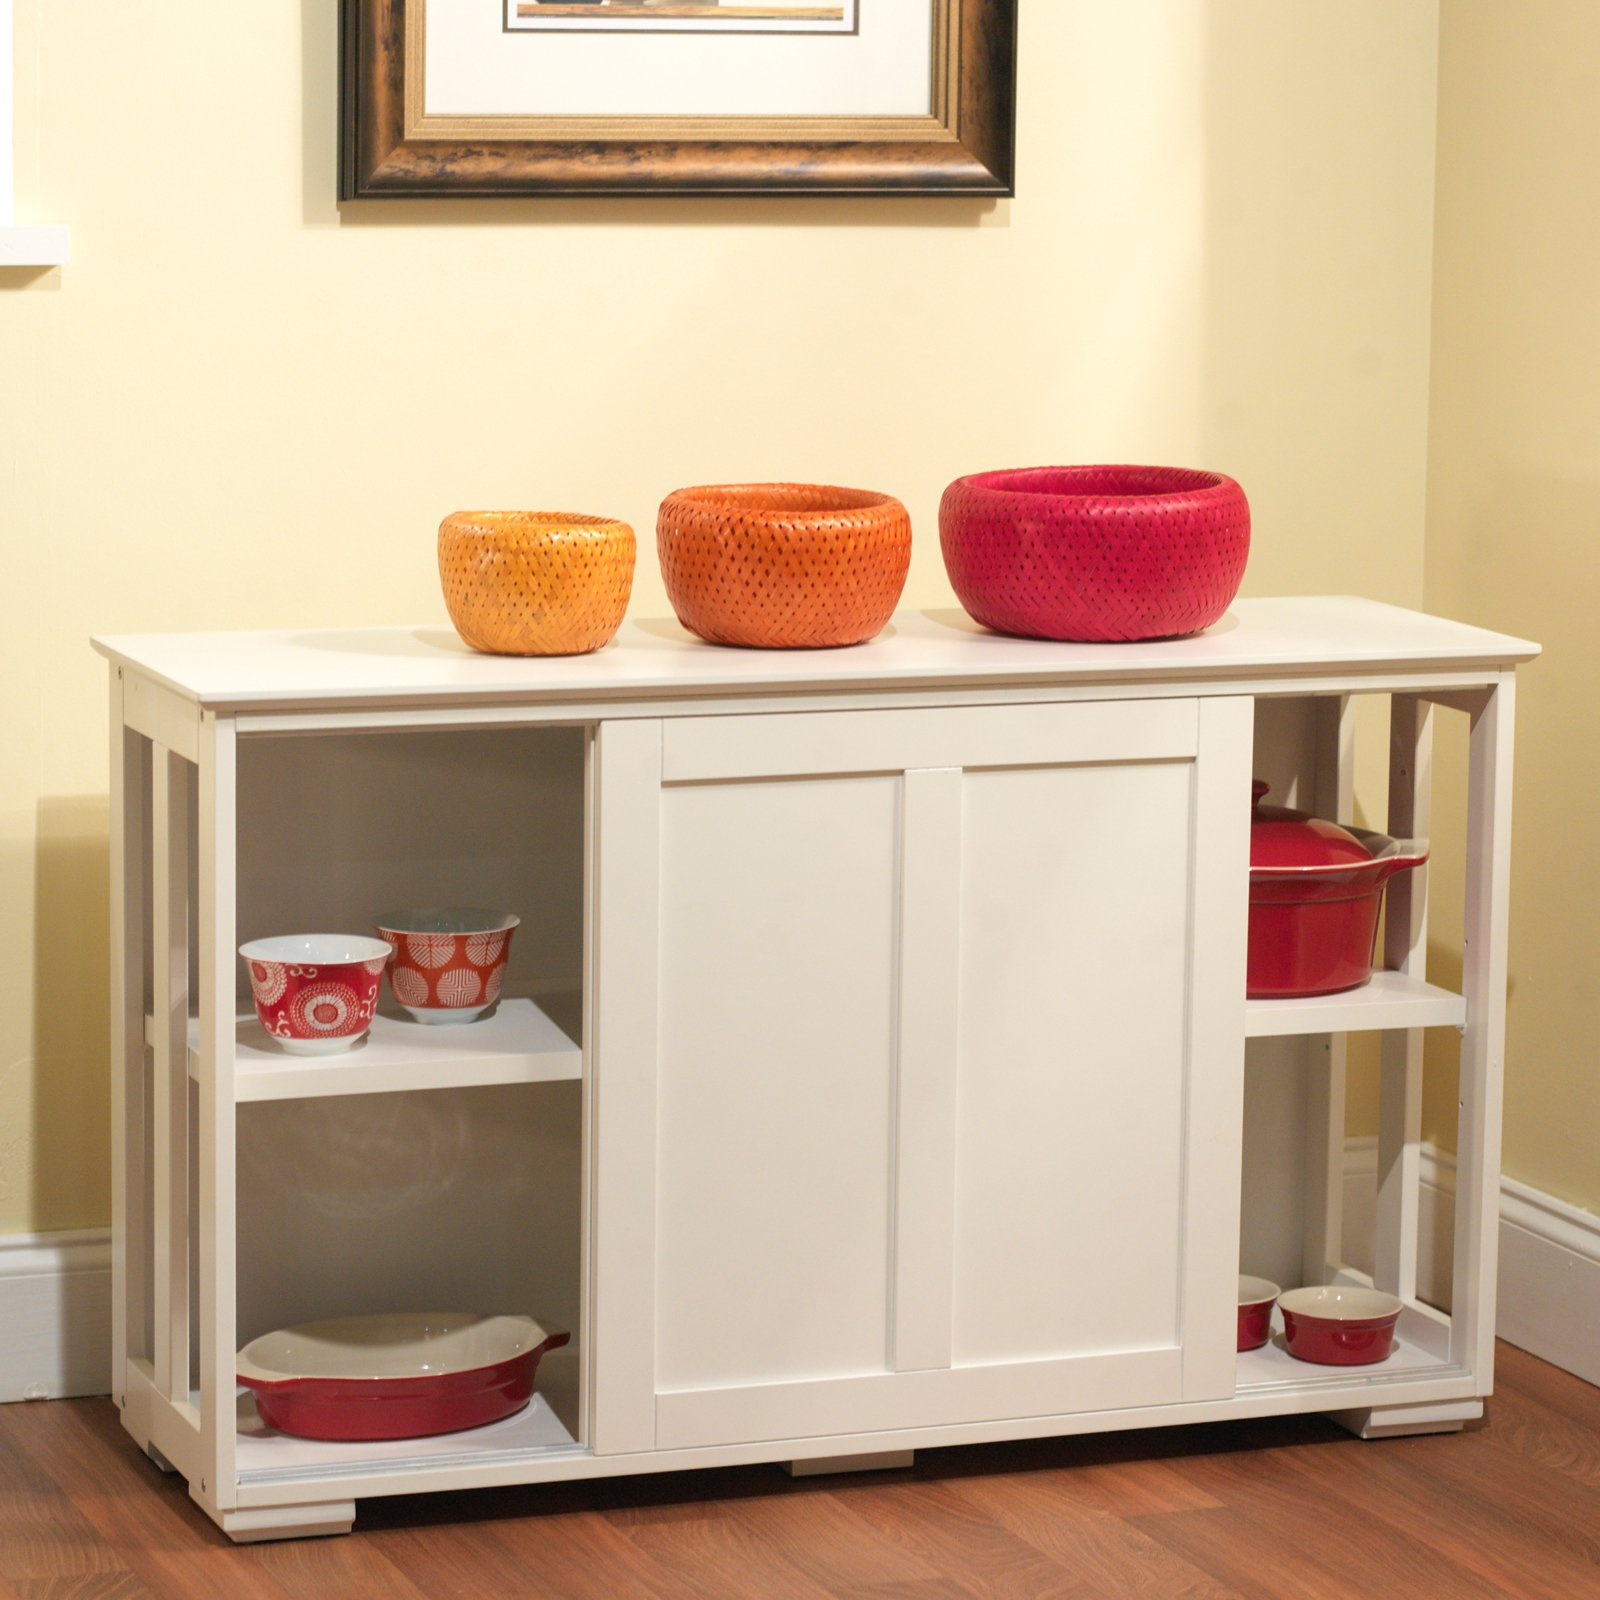 Sliding Wood Doors Stackable Storage Cabinet, Multiple Colors   Walmart.com